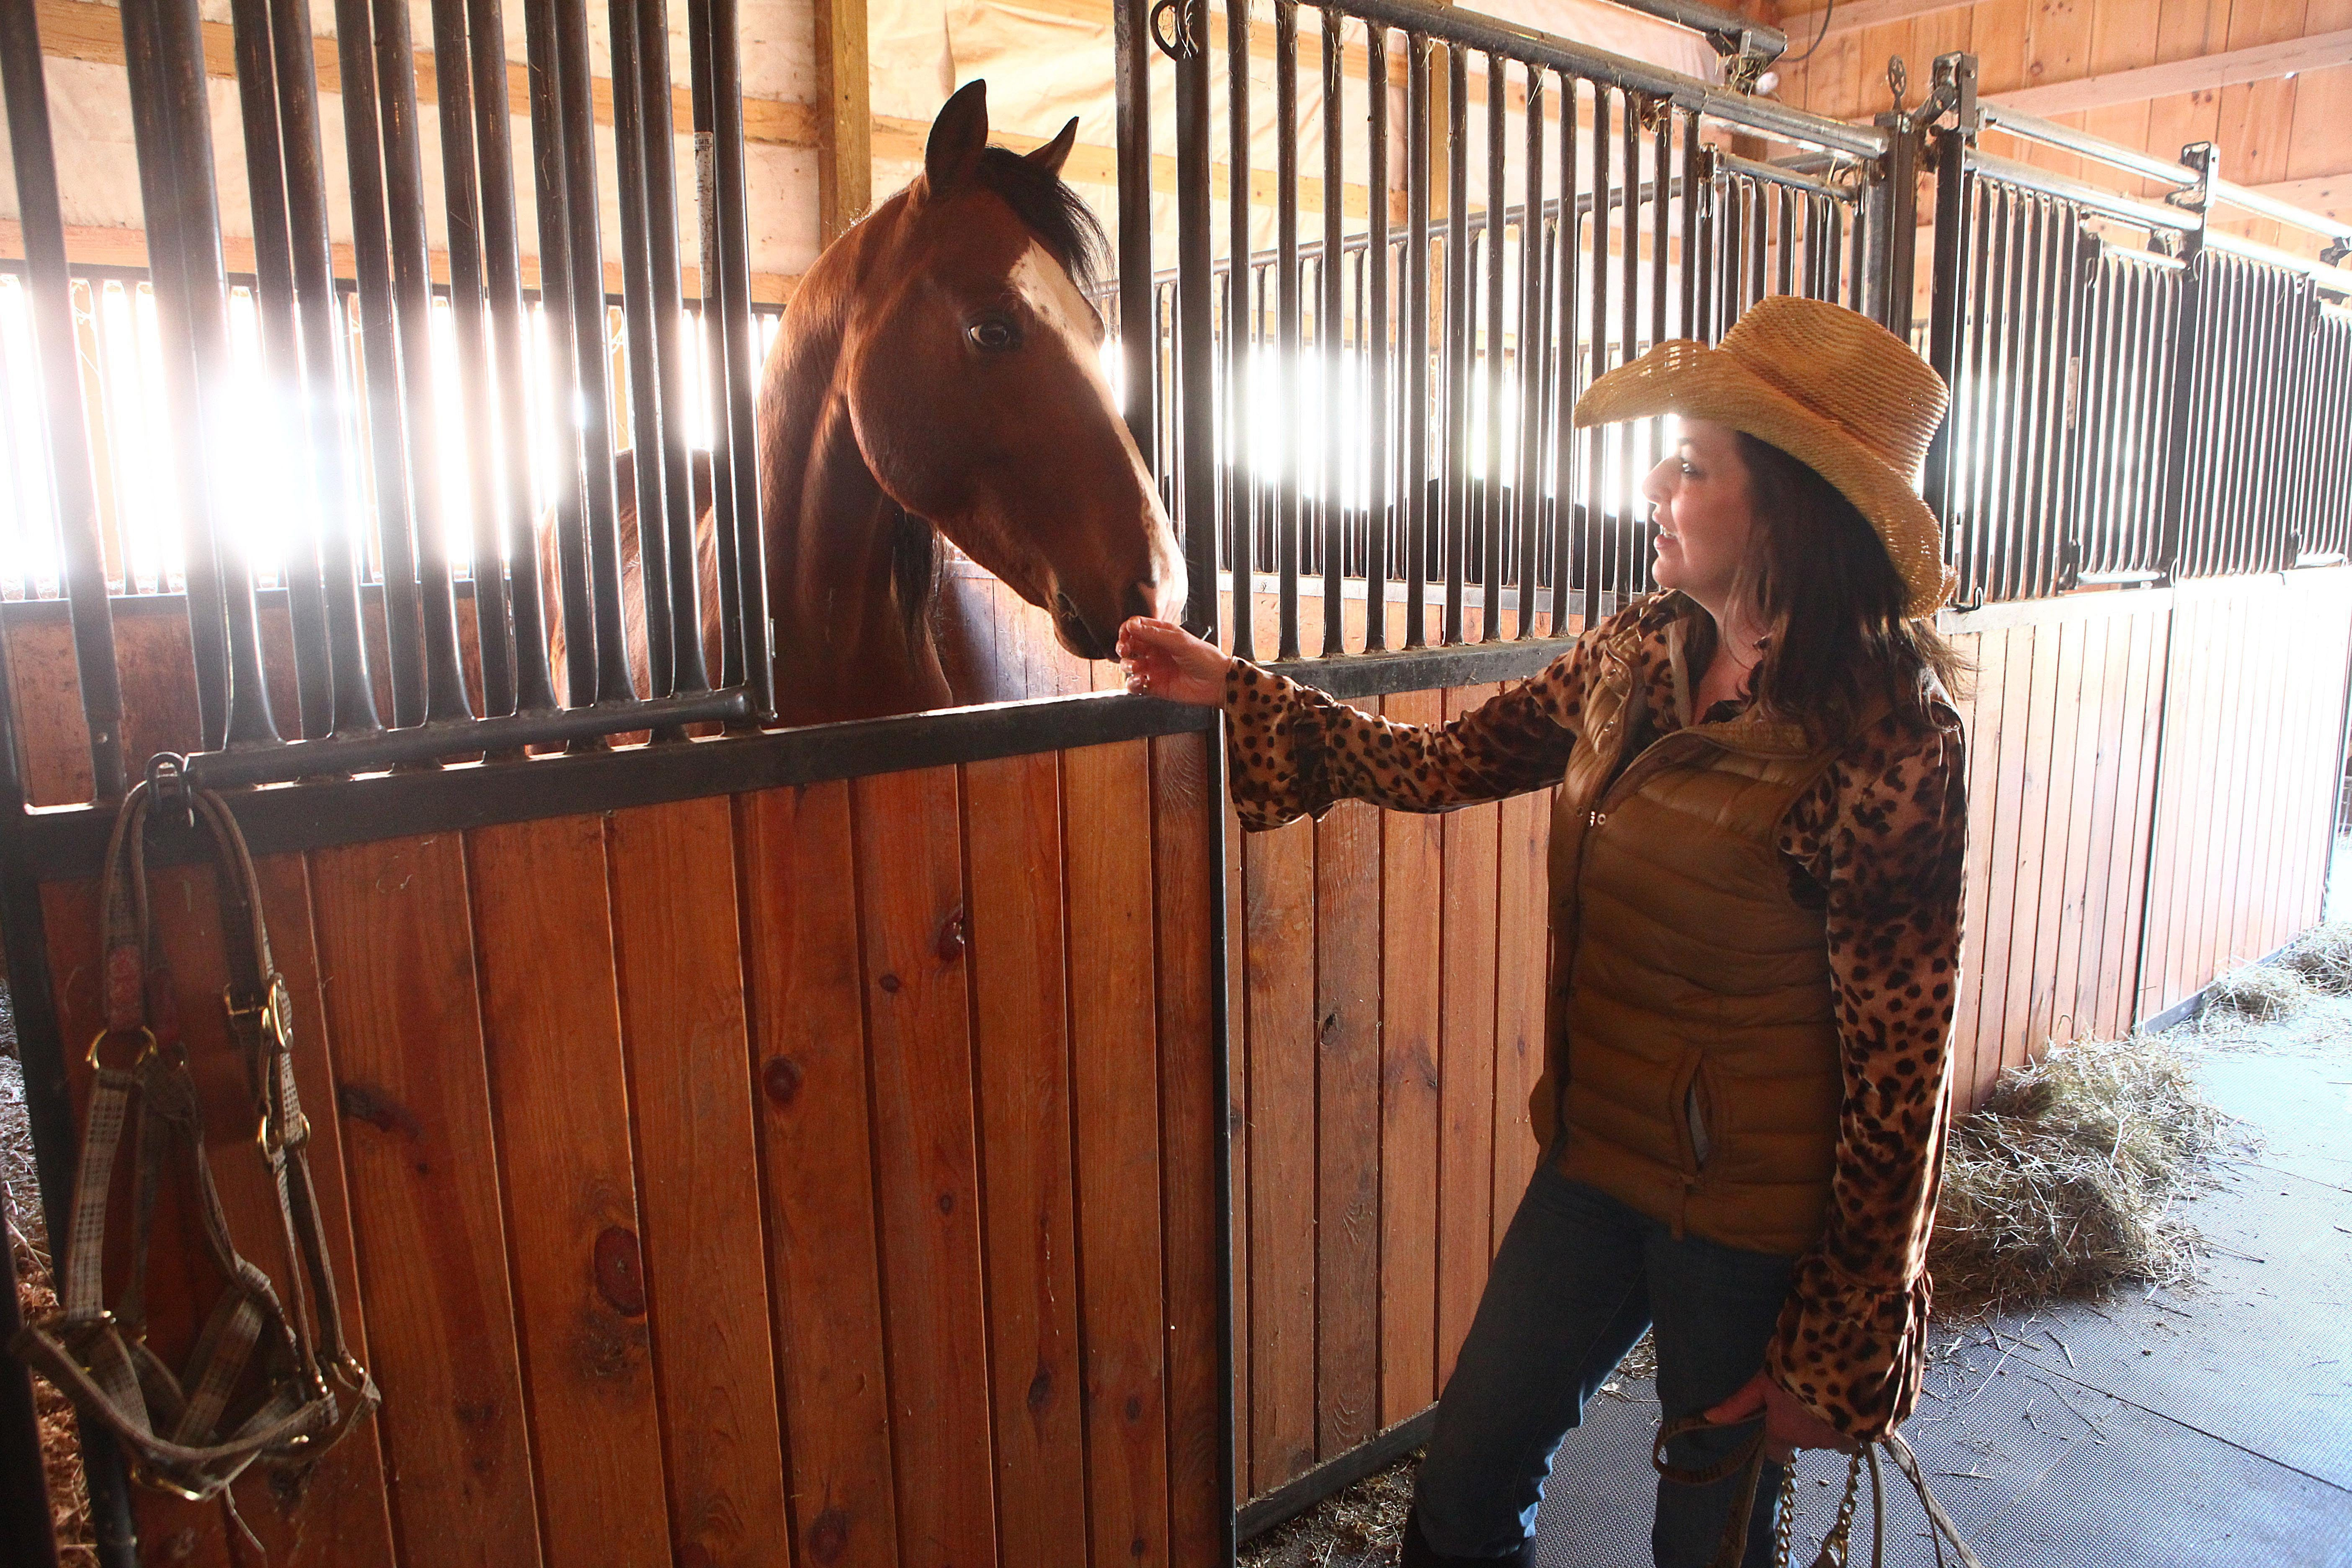 Beth Hoskins, seen here in a photo taken in her East Aurora stable in 2012, remains embroiled in a yearslong legal battle over her horses. (Robert Kirkham/Buffalo News)